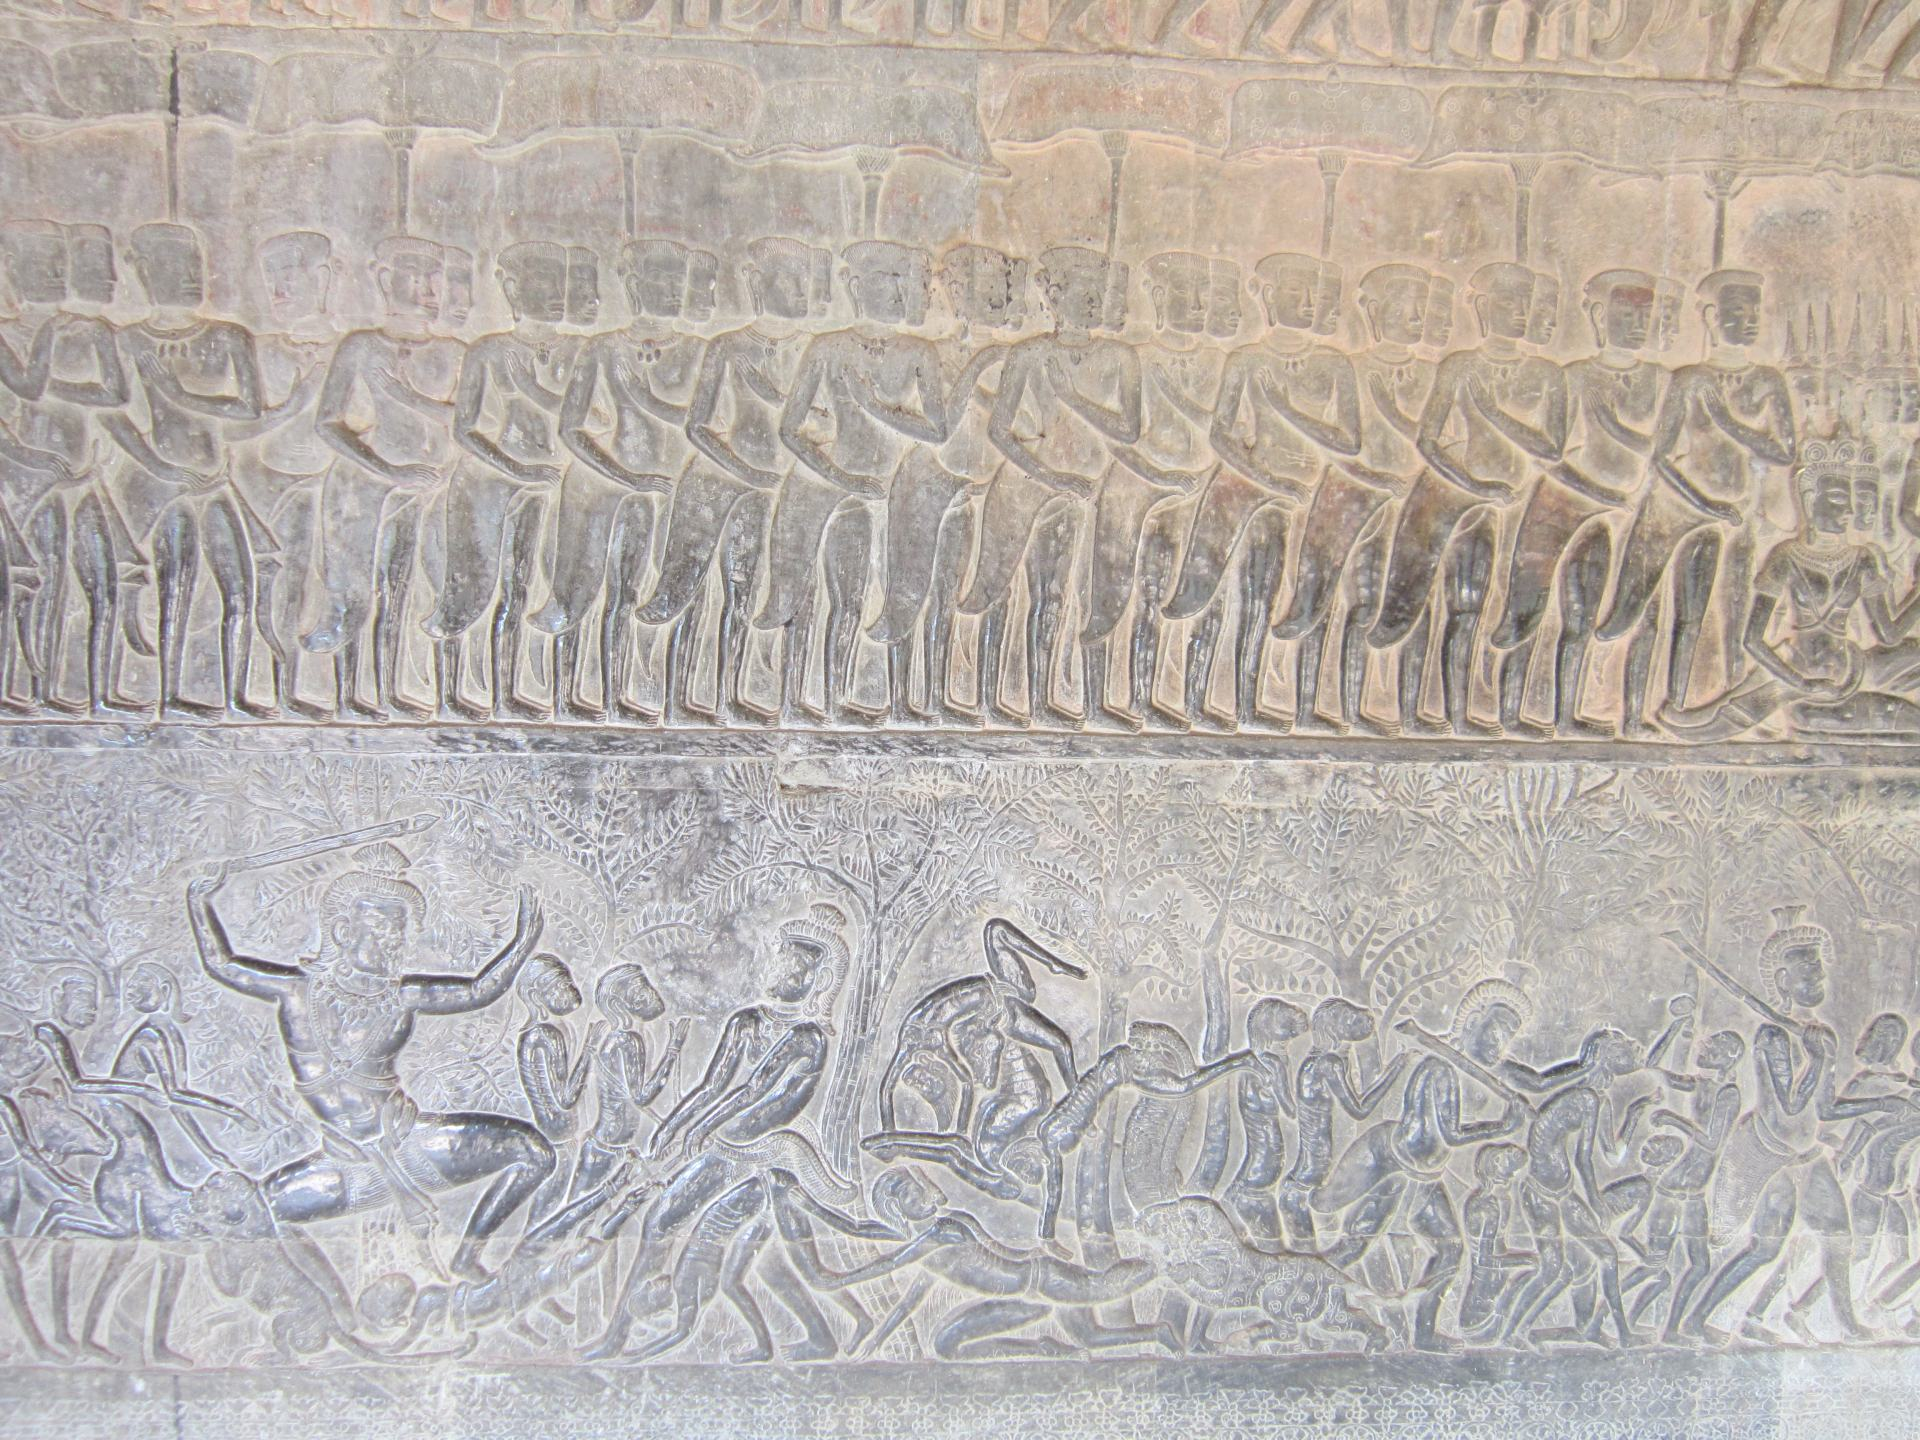 Hindu carvings inside Angkor Wat, showing many people in varying poses. There are 2 row,s the top row features people in a line, the bottom more sporadic.